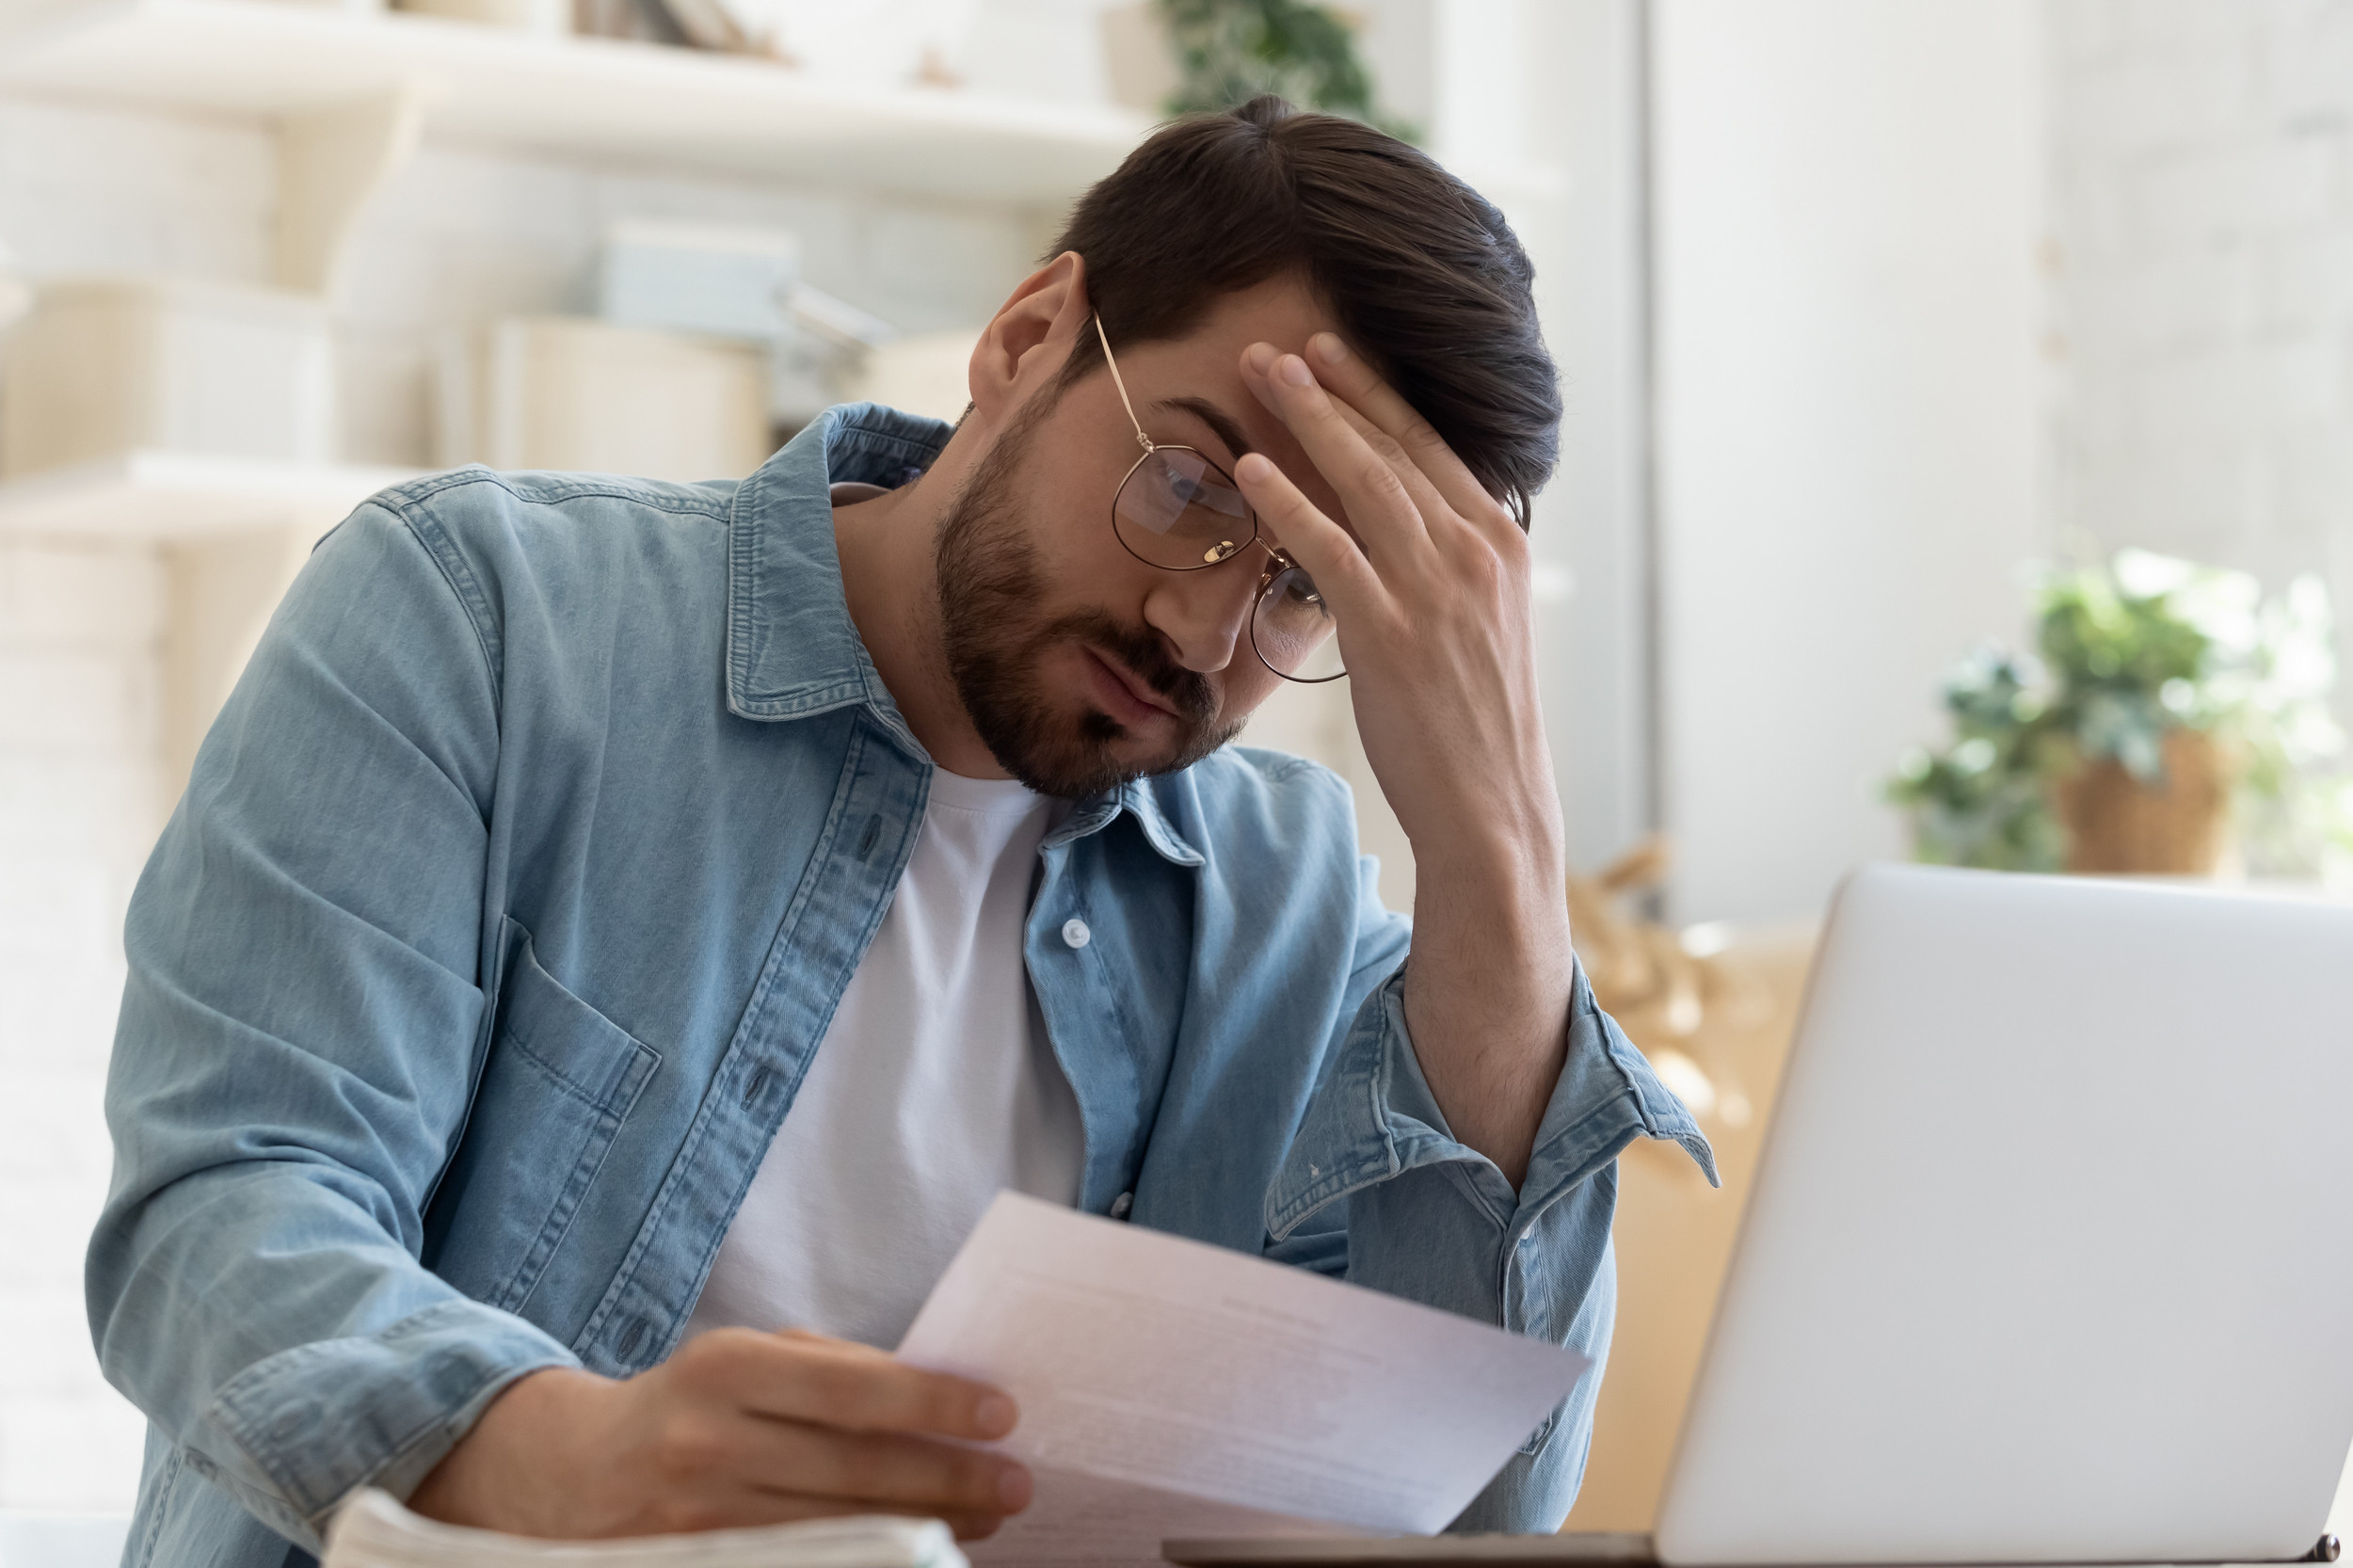 Cancellation of debt: What to know about taxes when you can't pay your bills